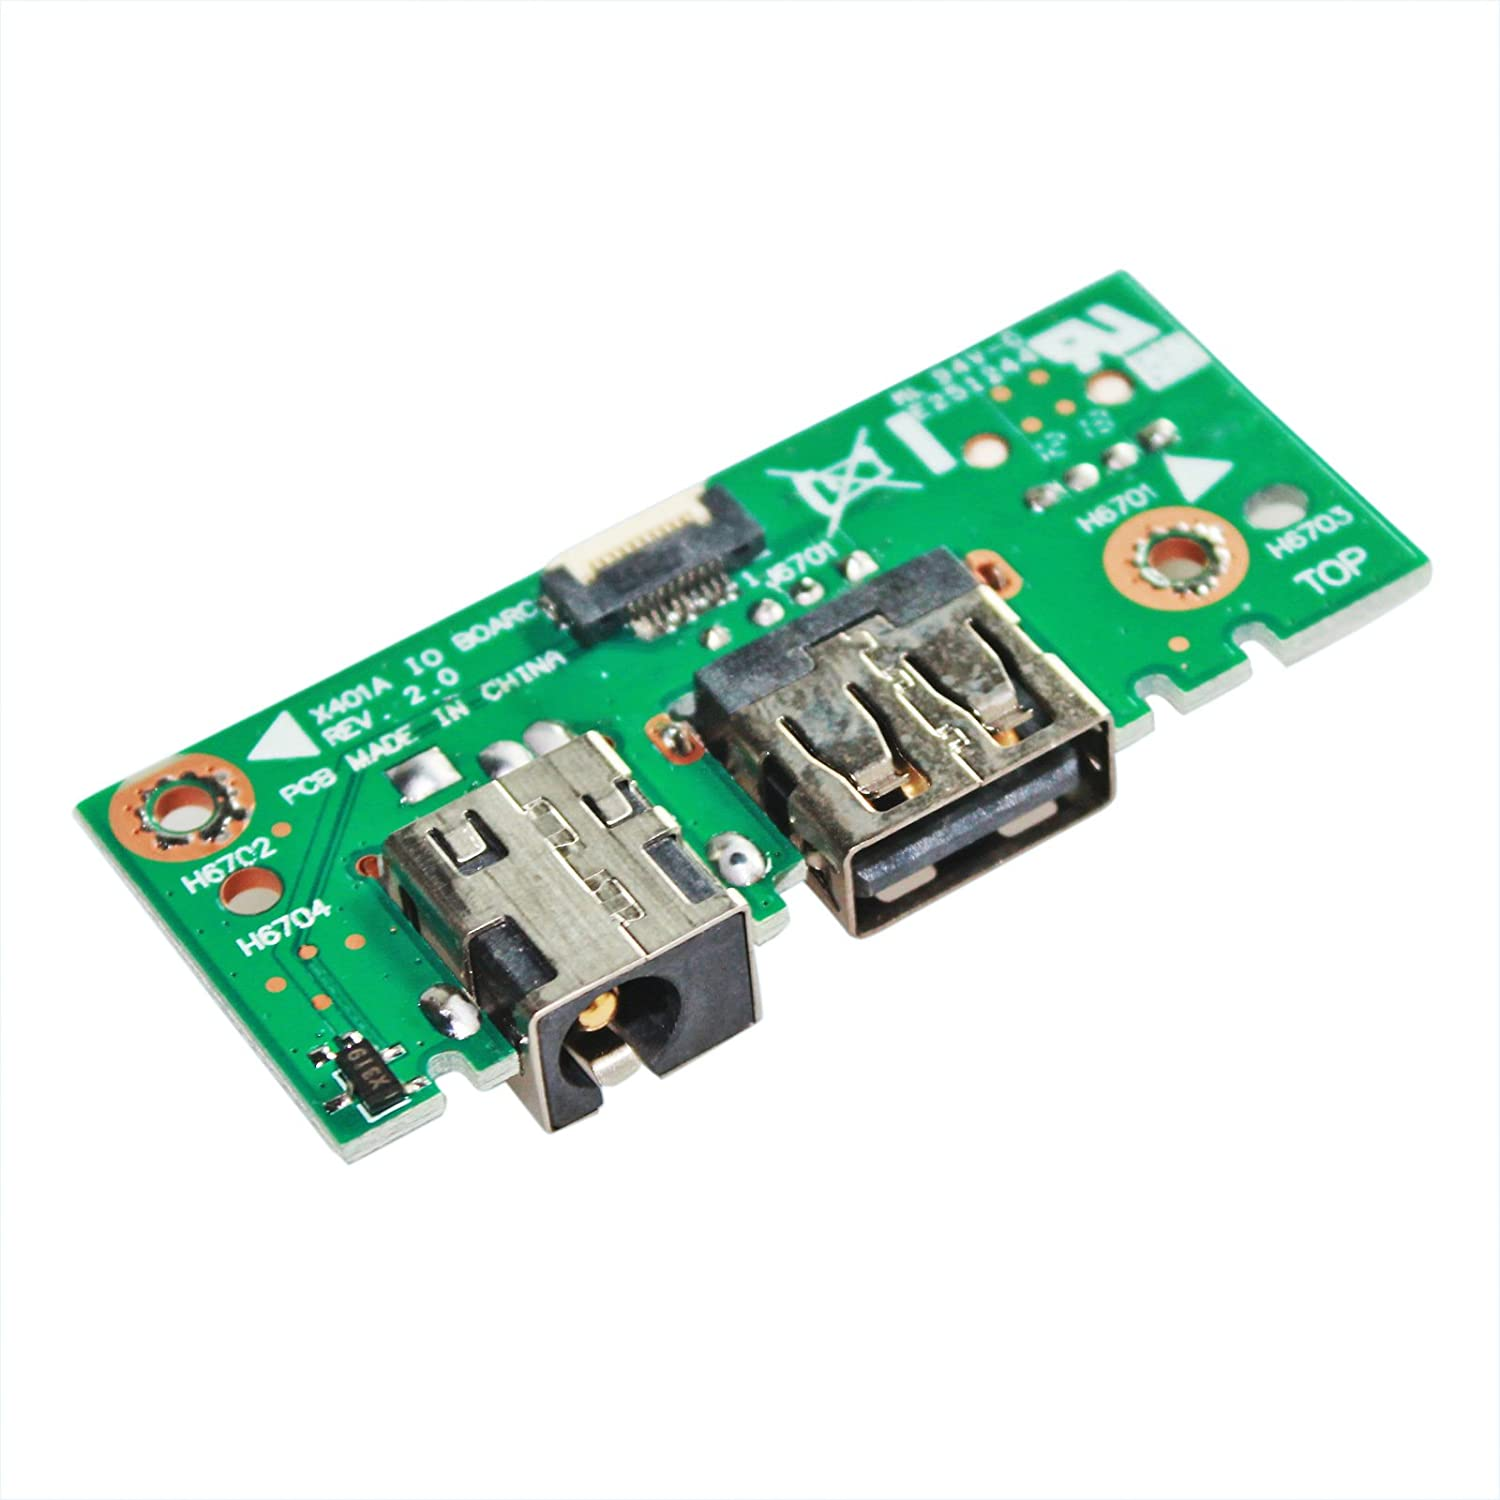 GinTai Laptop DC Power Jack USB Board Replacement for Asus X501A X401A F401A X301A F301A